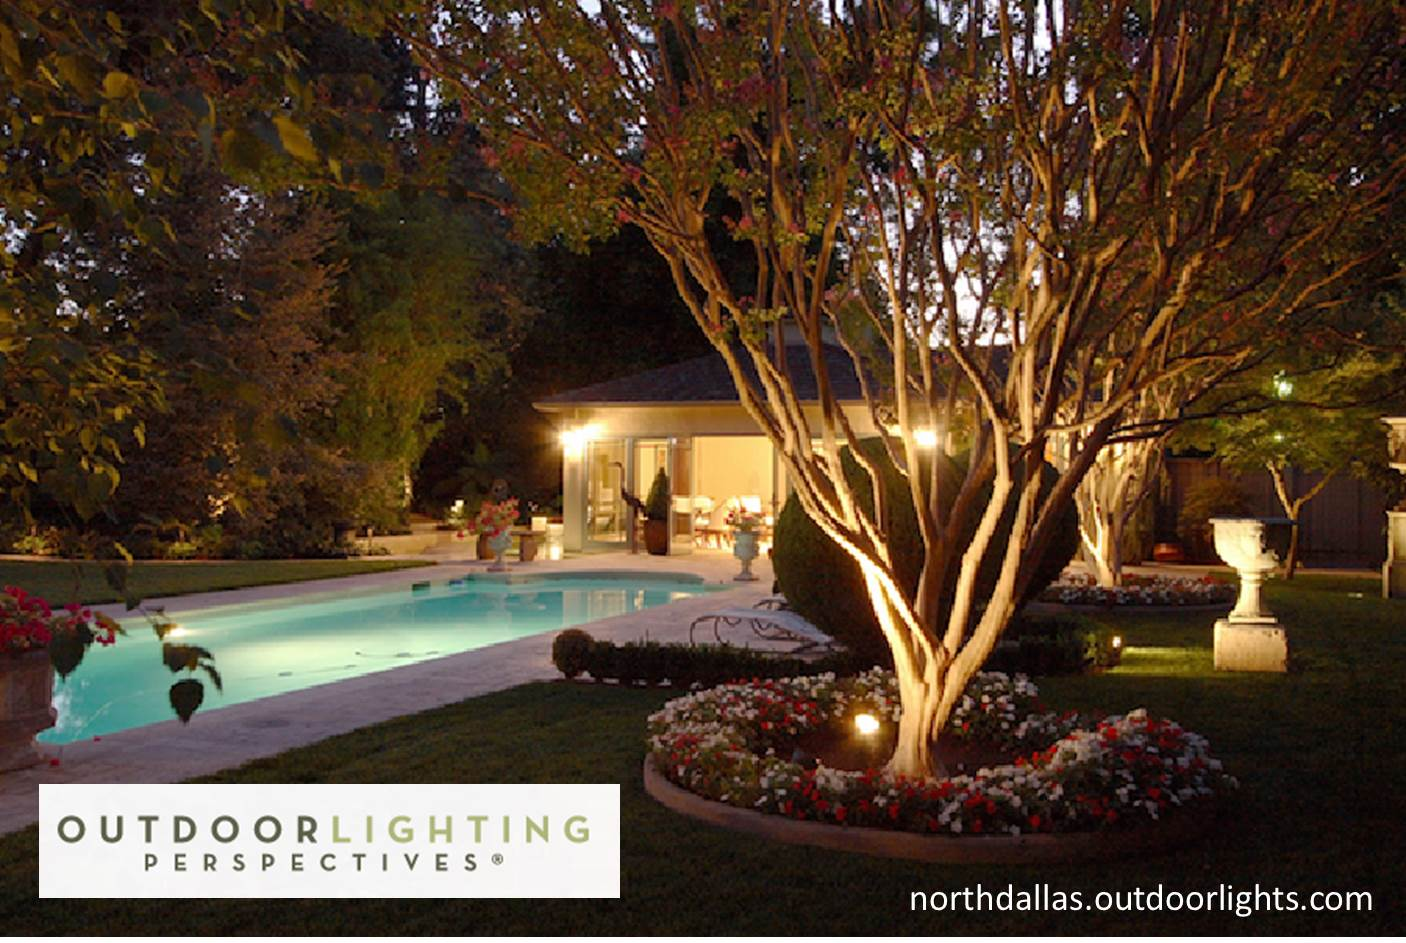 outdoor lighting perspectives of dallas 3131 mckinney ave ste 600 dallas tx lighting stores mapquest